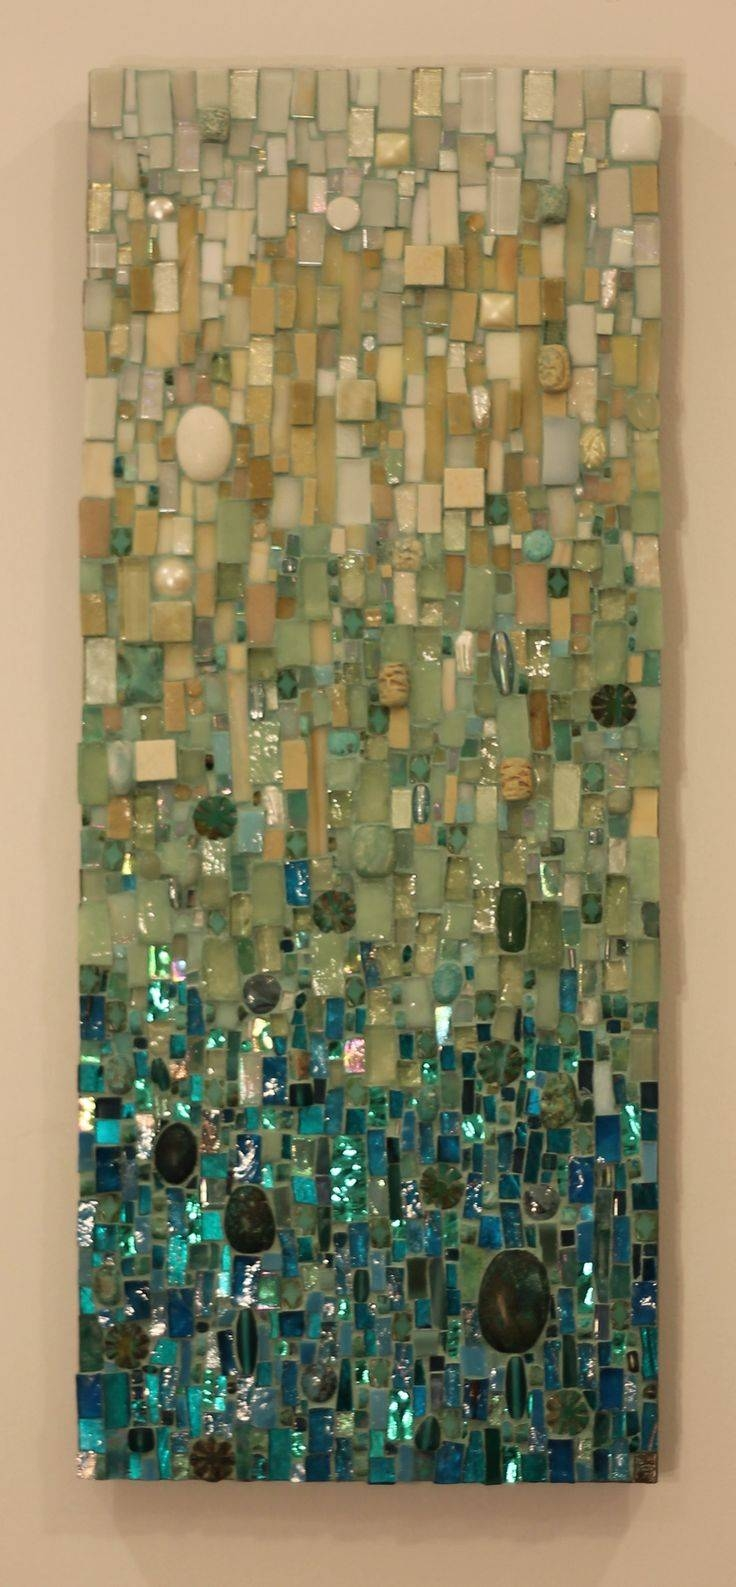 25+ Unique Mosaic Wall Art Ideas On Pinterest | Mosaic Art, Mosaic Pertaining To Newest Pixel Mosaic Wall Art (View 1 of 20)